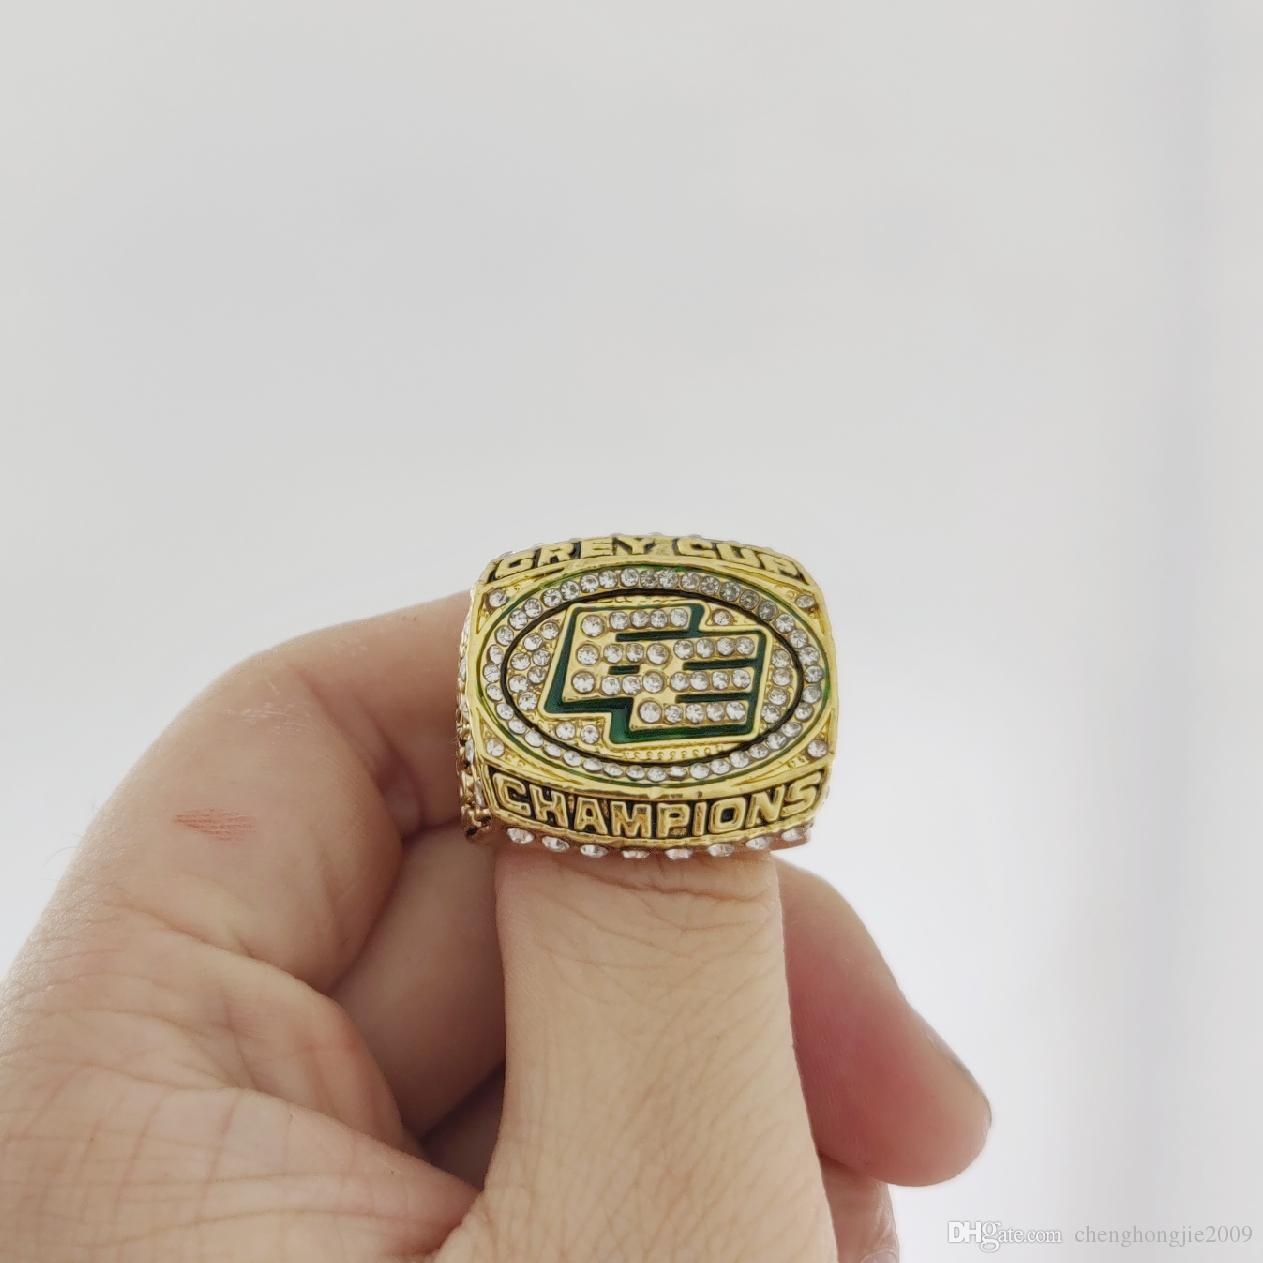 2019 Wholesale 2003 Edmonton Eskimos The 91st Grey Cup Champions Ring Give Gifts To Friends Canada From Chenghongjie2009 CAD 745